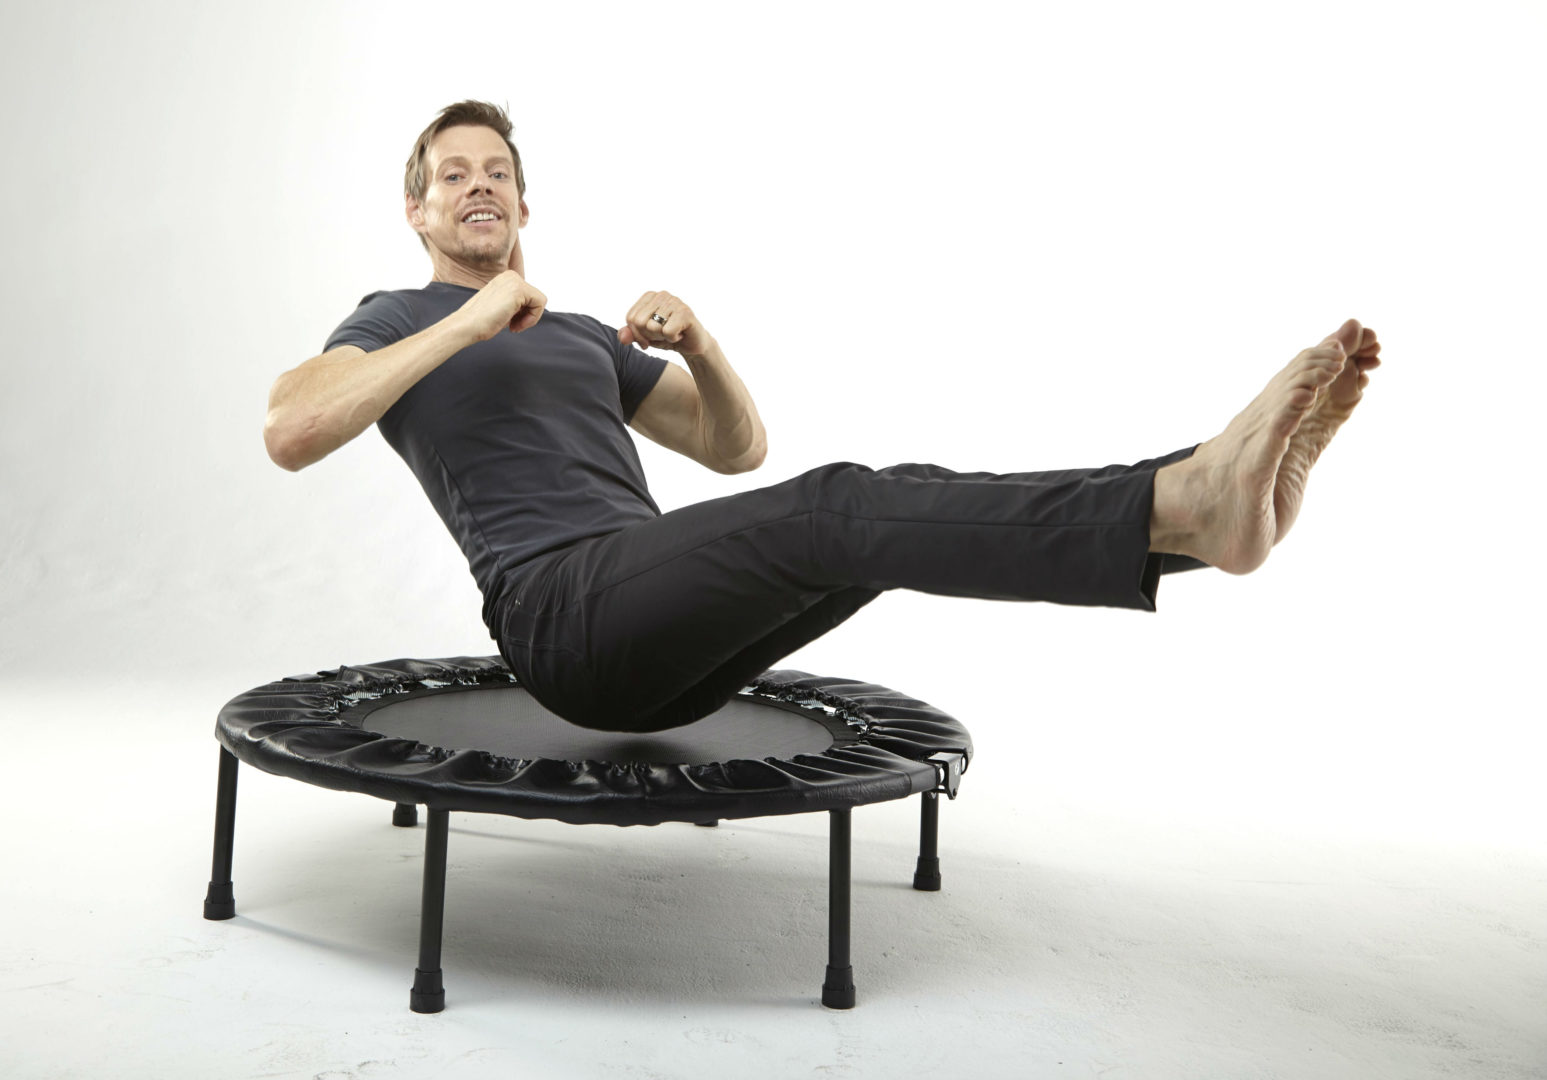 Rebounding with the Cellerciser gives you more benefits than using other mini trampolines